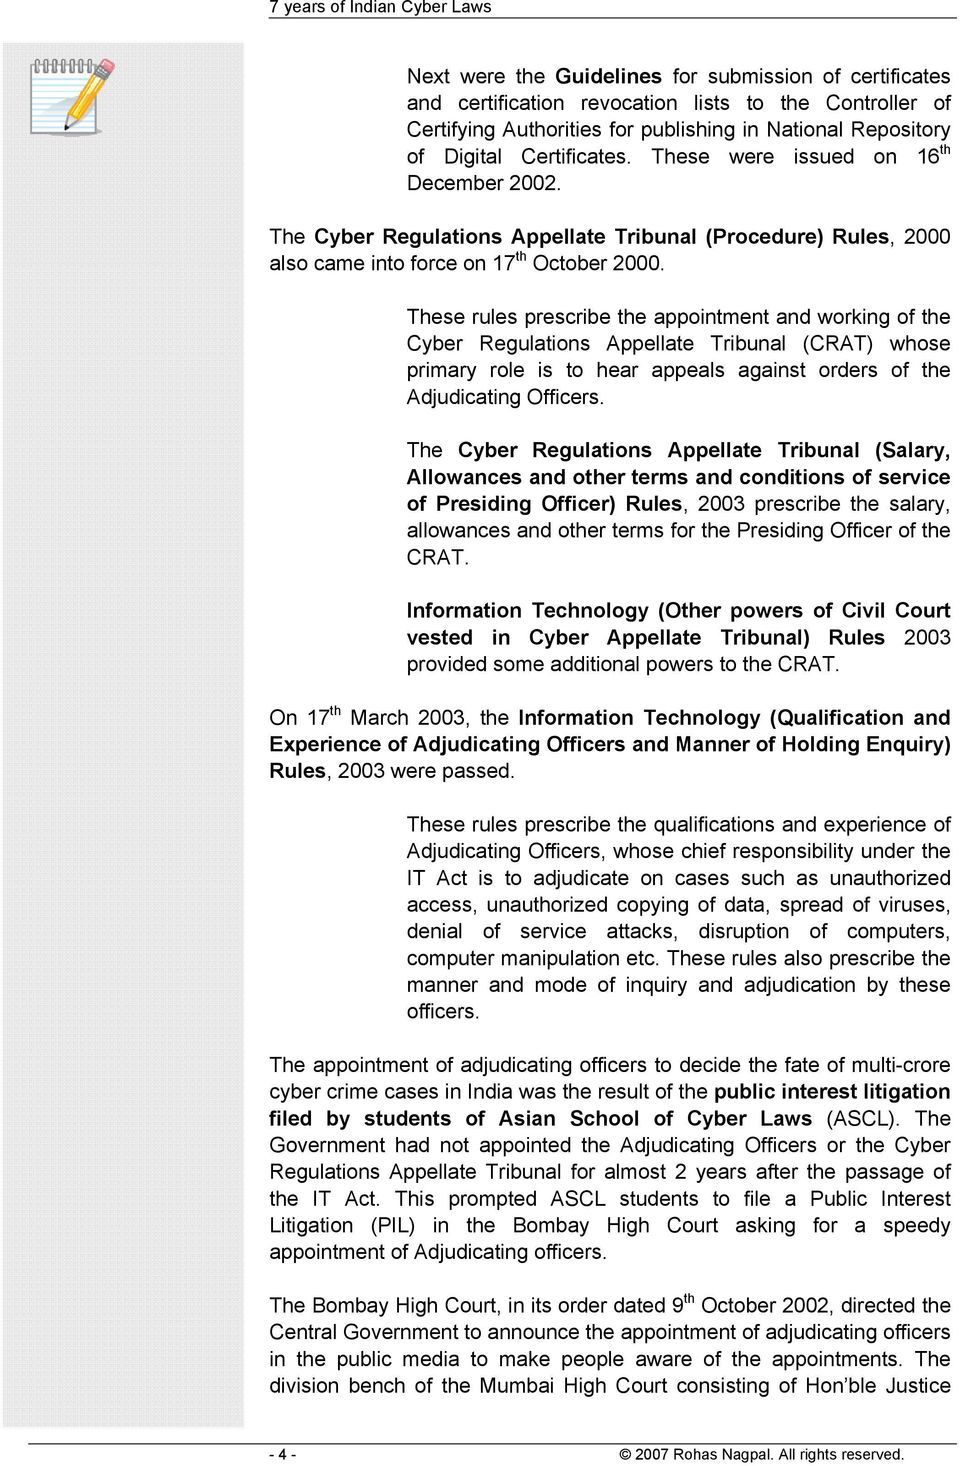 7 Years Of Indian Cyber Law Rohas Nagpal Pdf